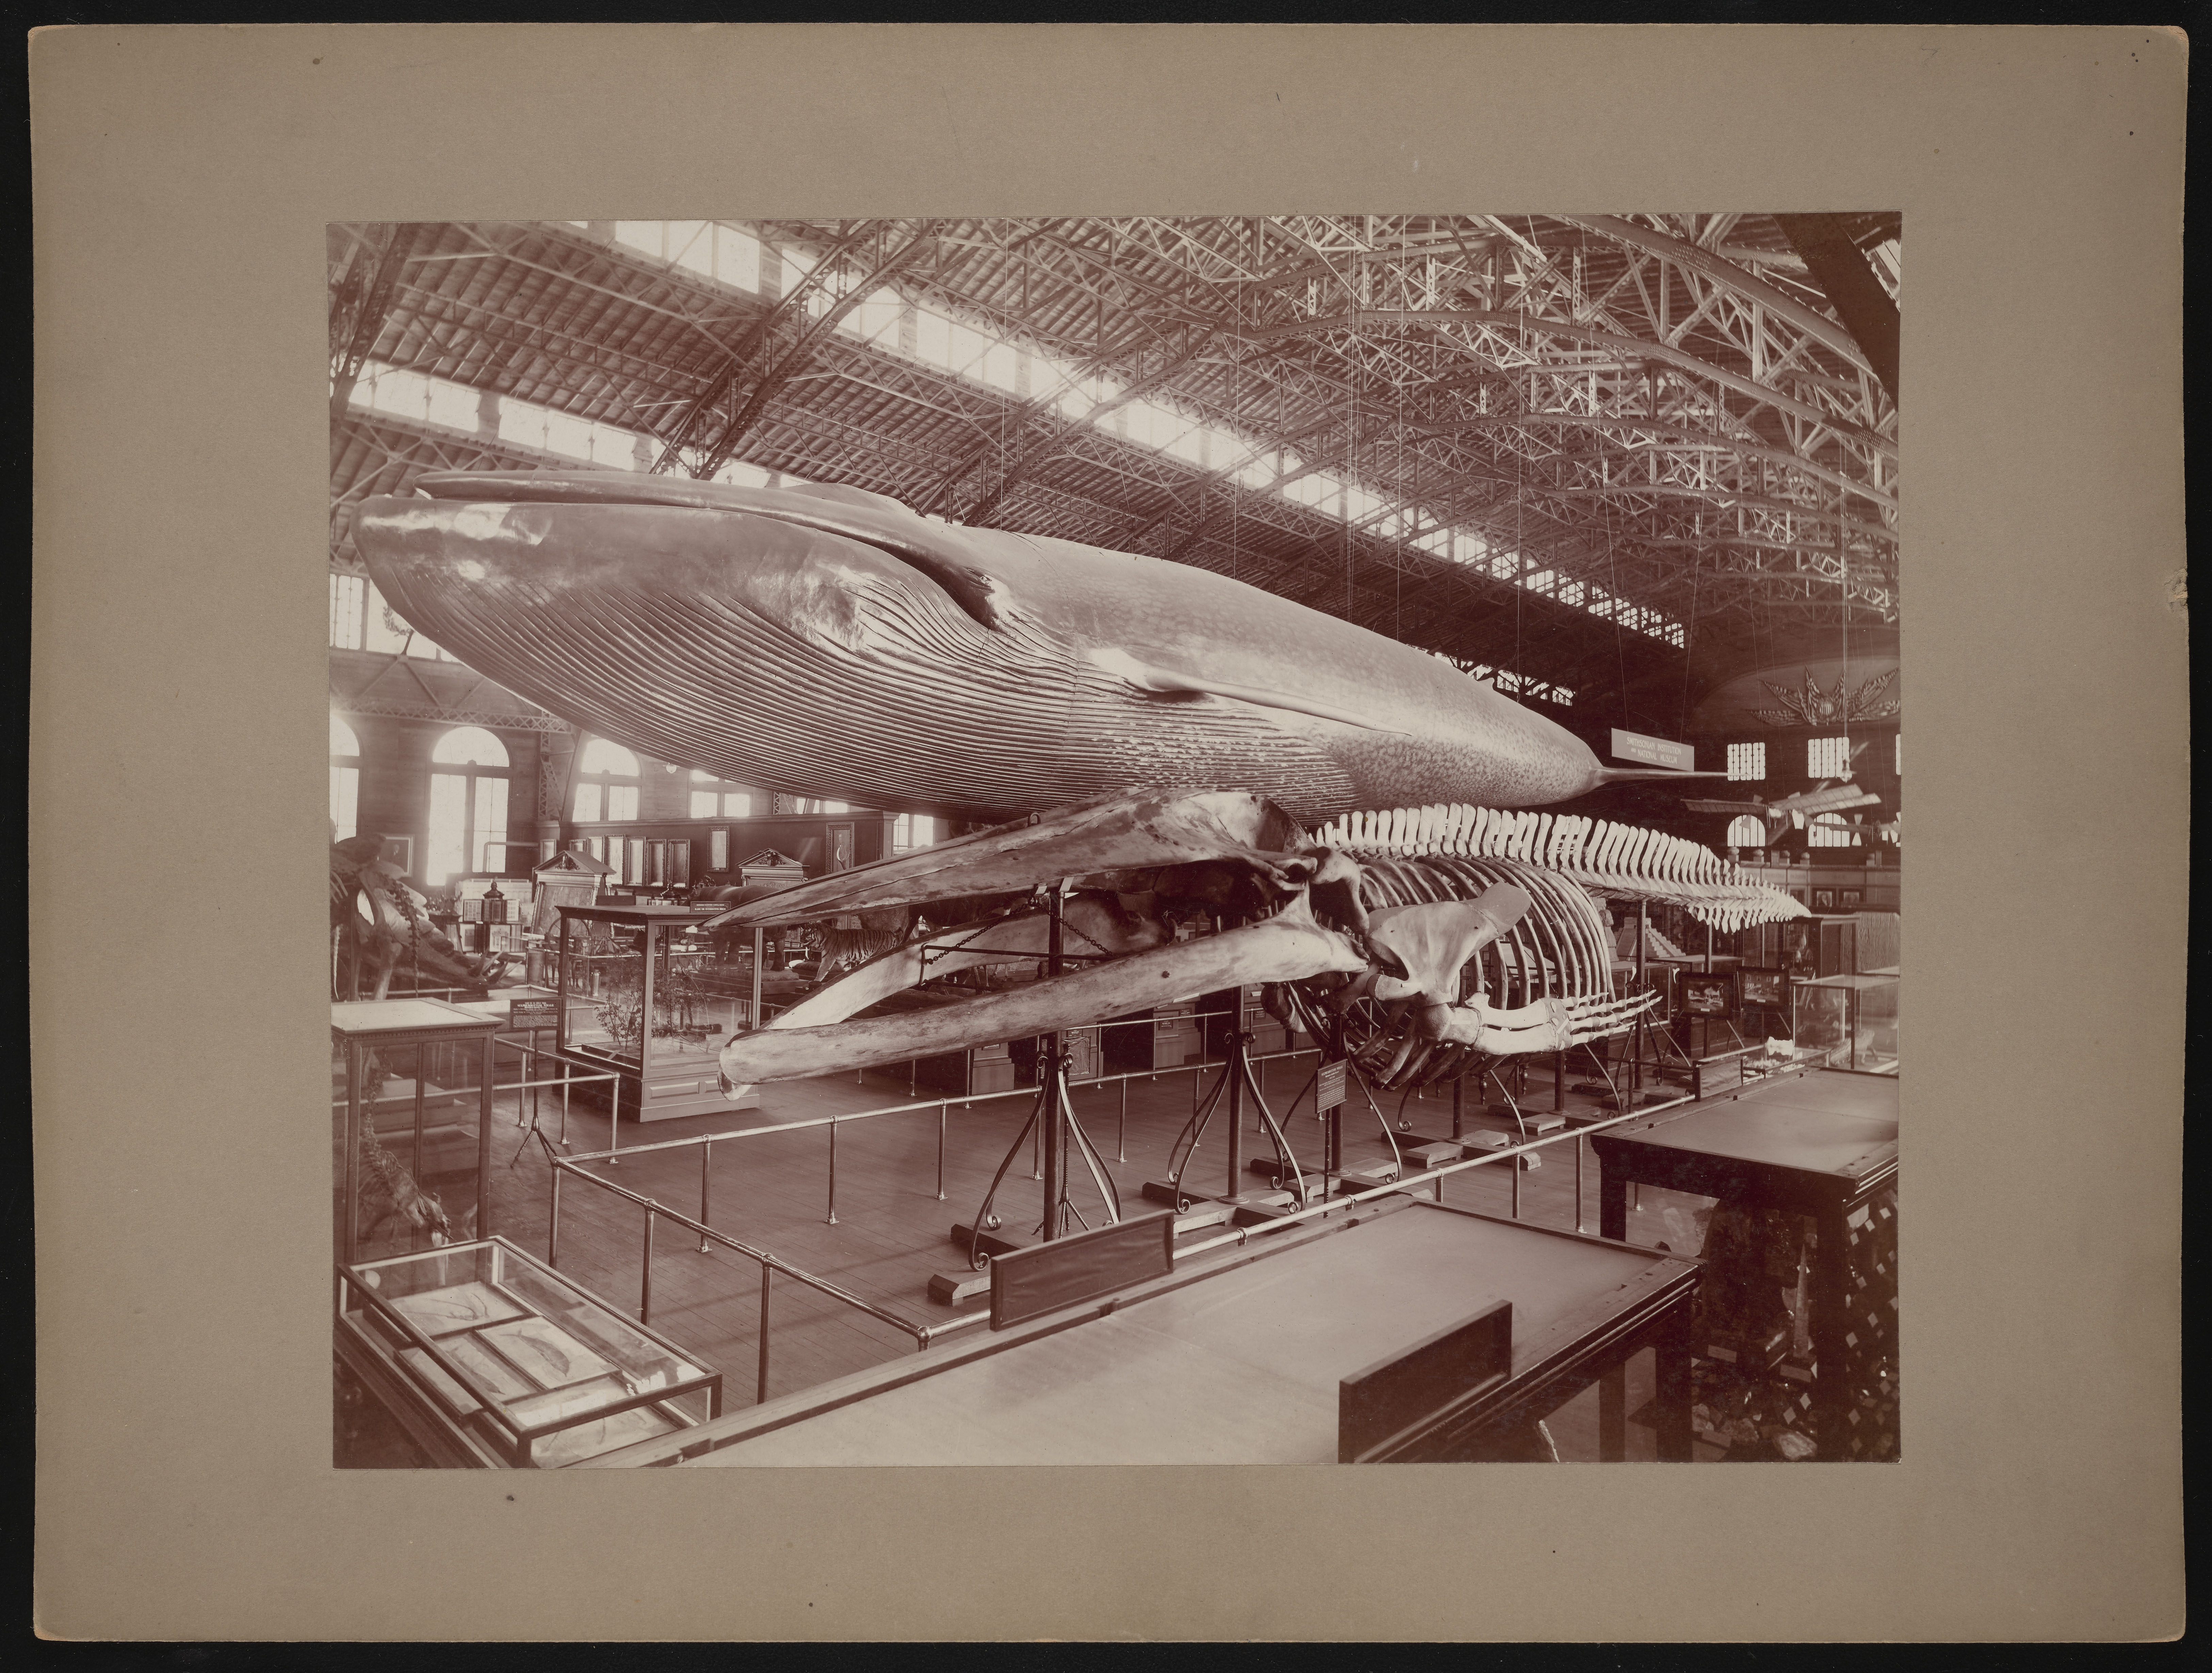 Cast and Skeleton of Blue Whale at Louisiana Purchase Exposition